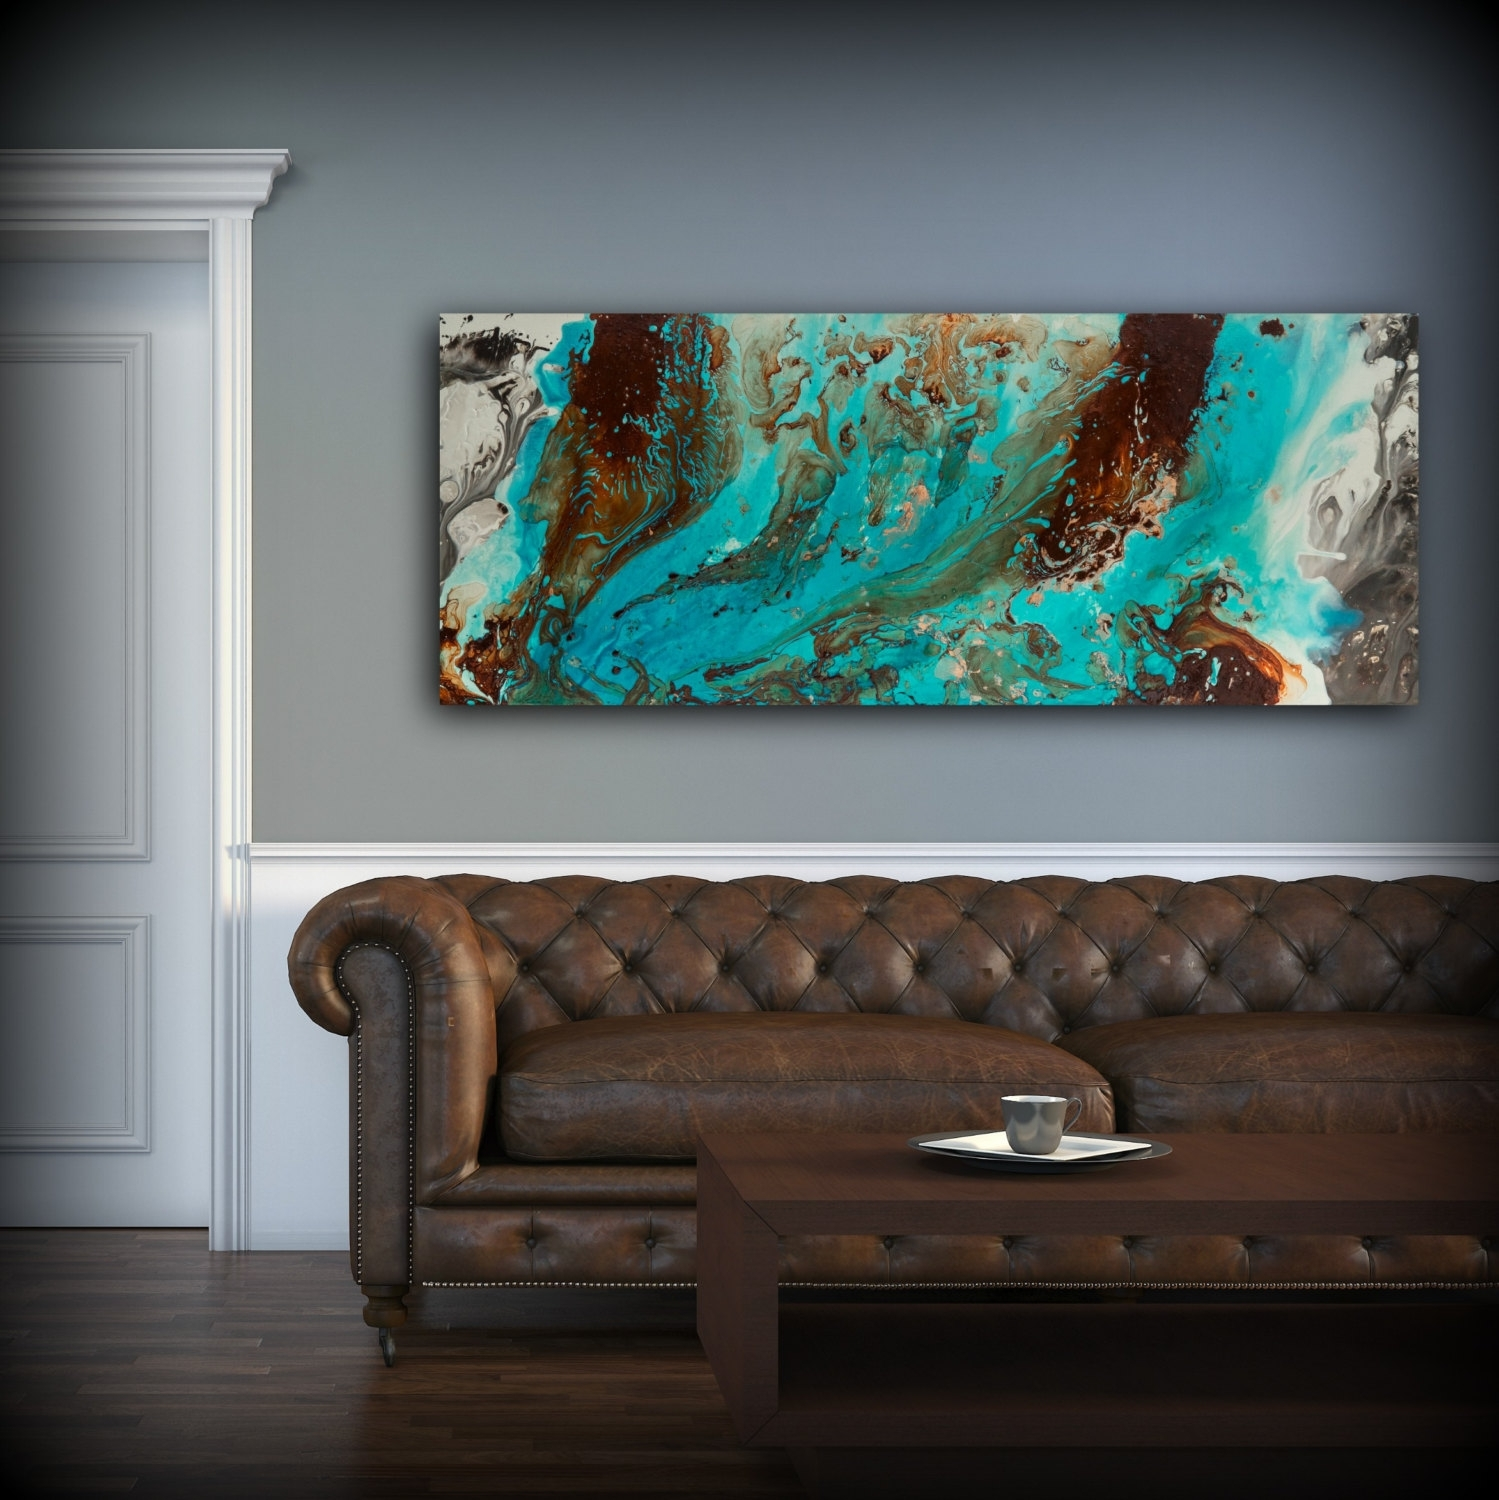 Absolutely Ideas Aqua Wall Art Australia Canvas Blue Metal With Regard To Latest Blue And Brown Abstract Wall Art (View 18 of 18)